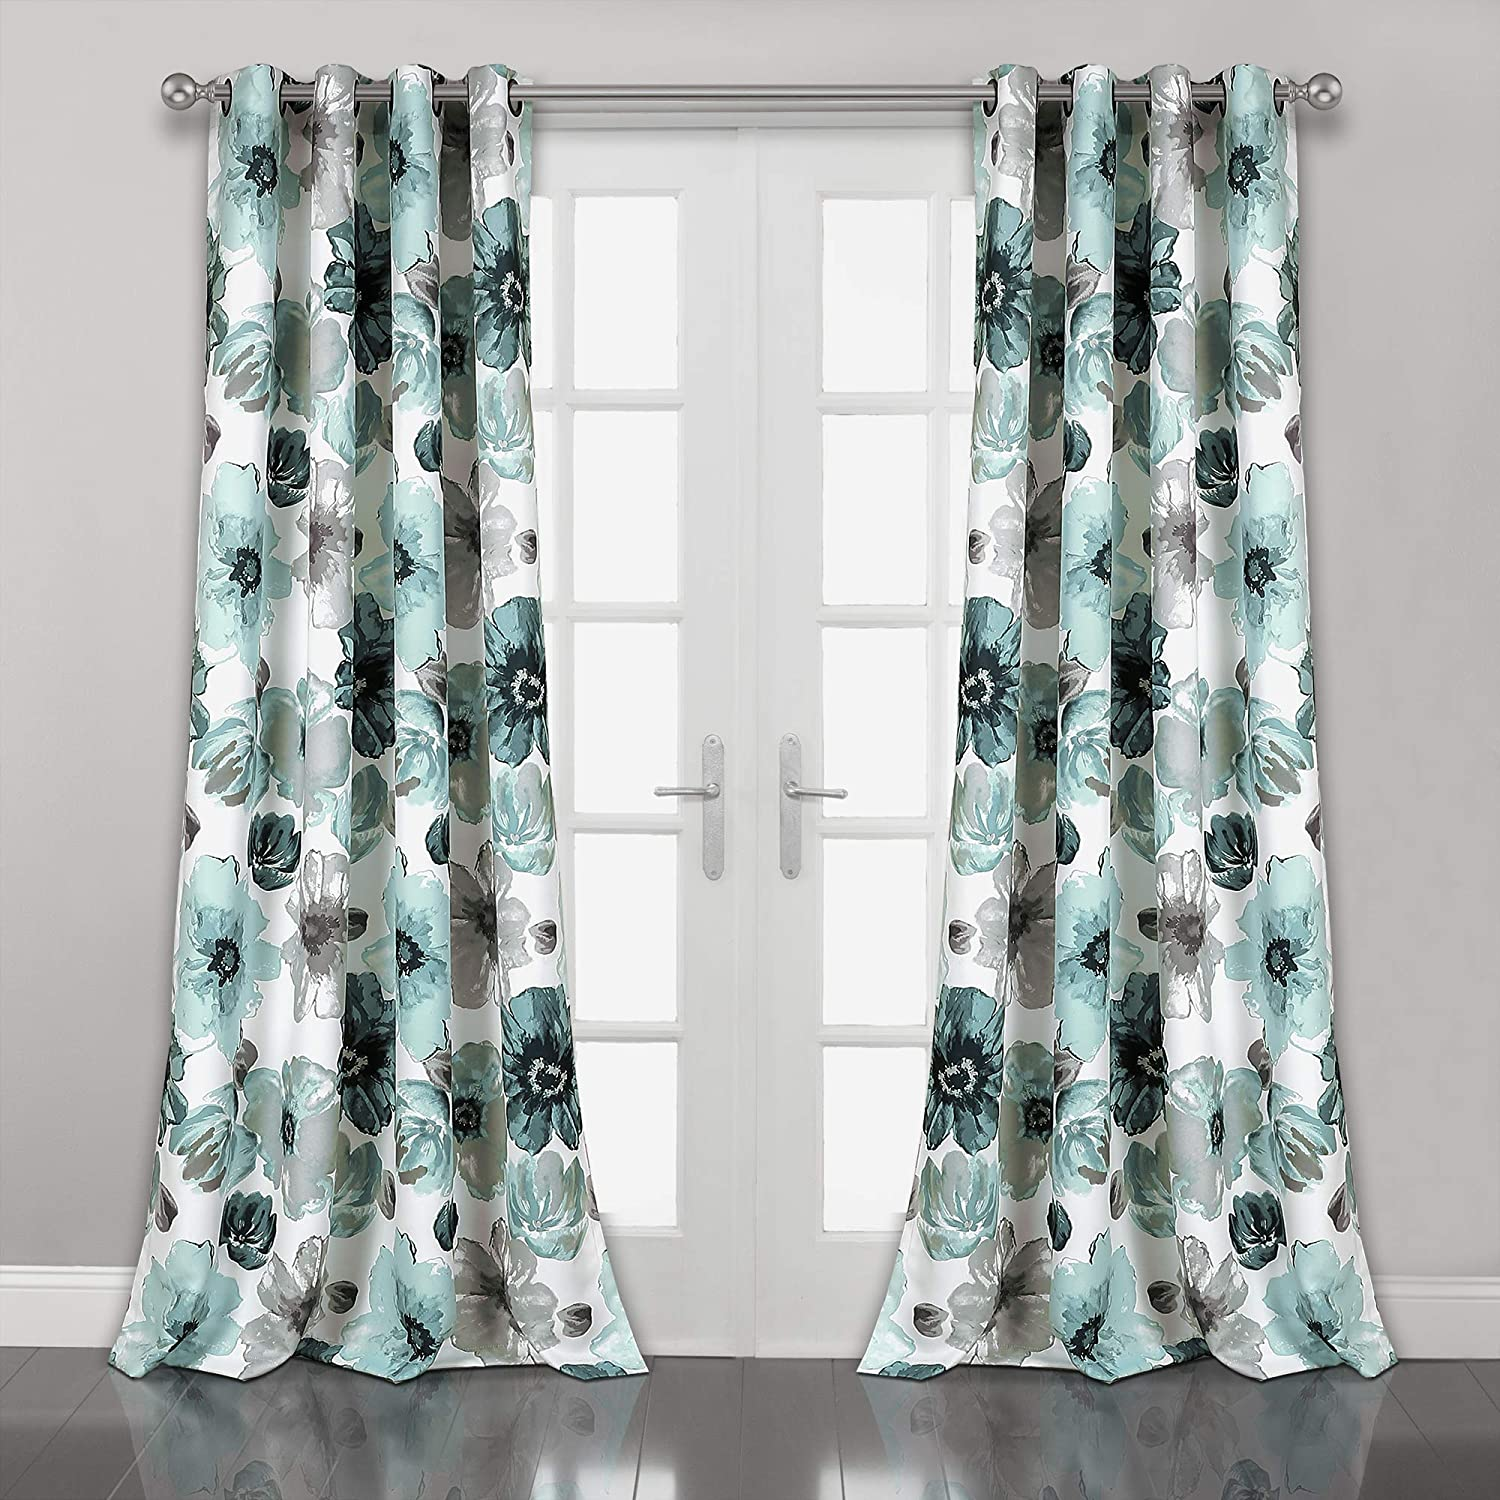 "Lush Decor Leah Floral Room Darkening Window Panel Curtain Set for Living, Dining, Bedroom (Pair), 95"" x 52"" Blue, L"